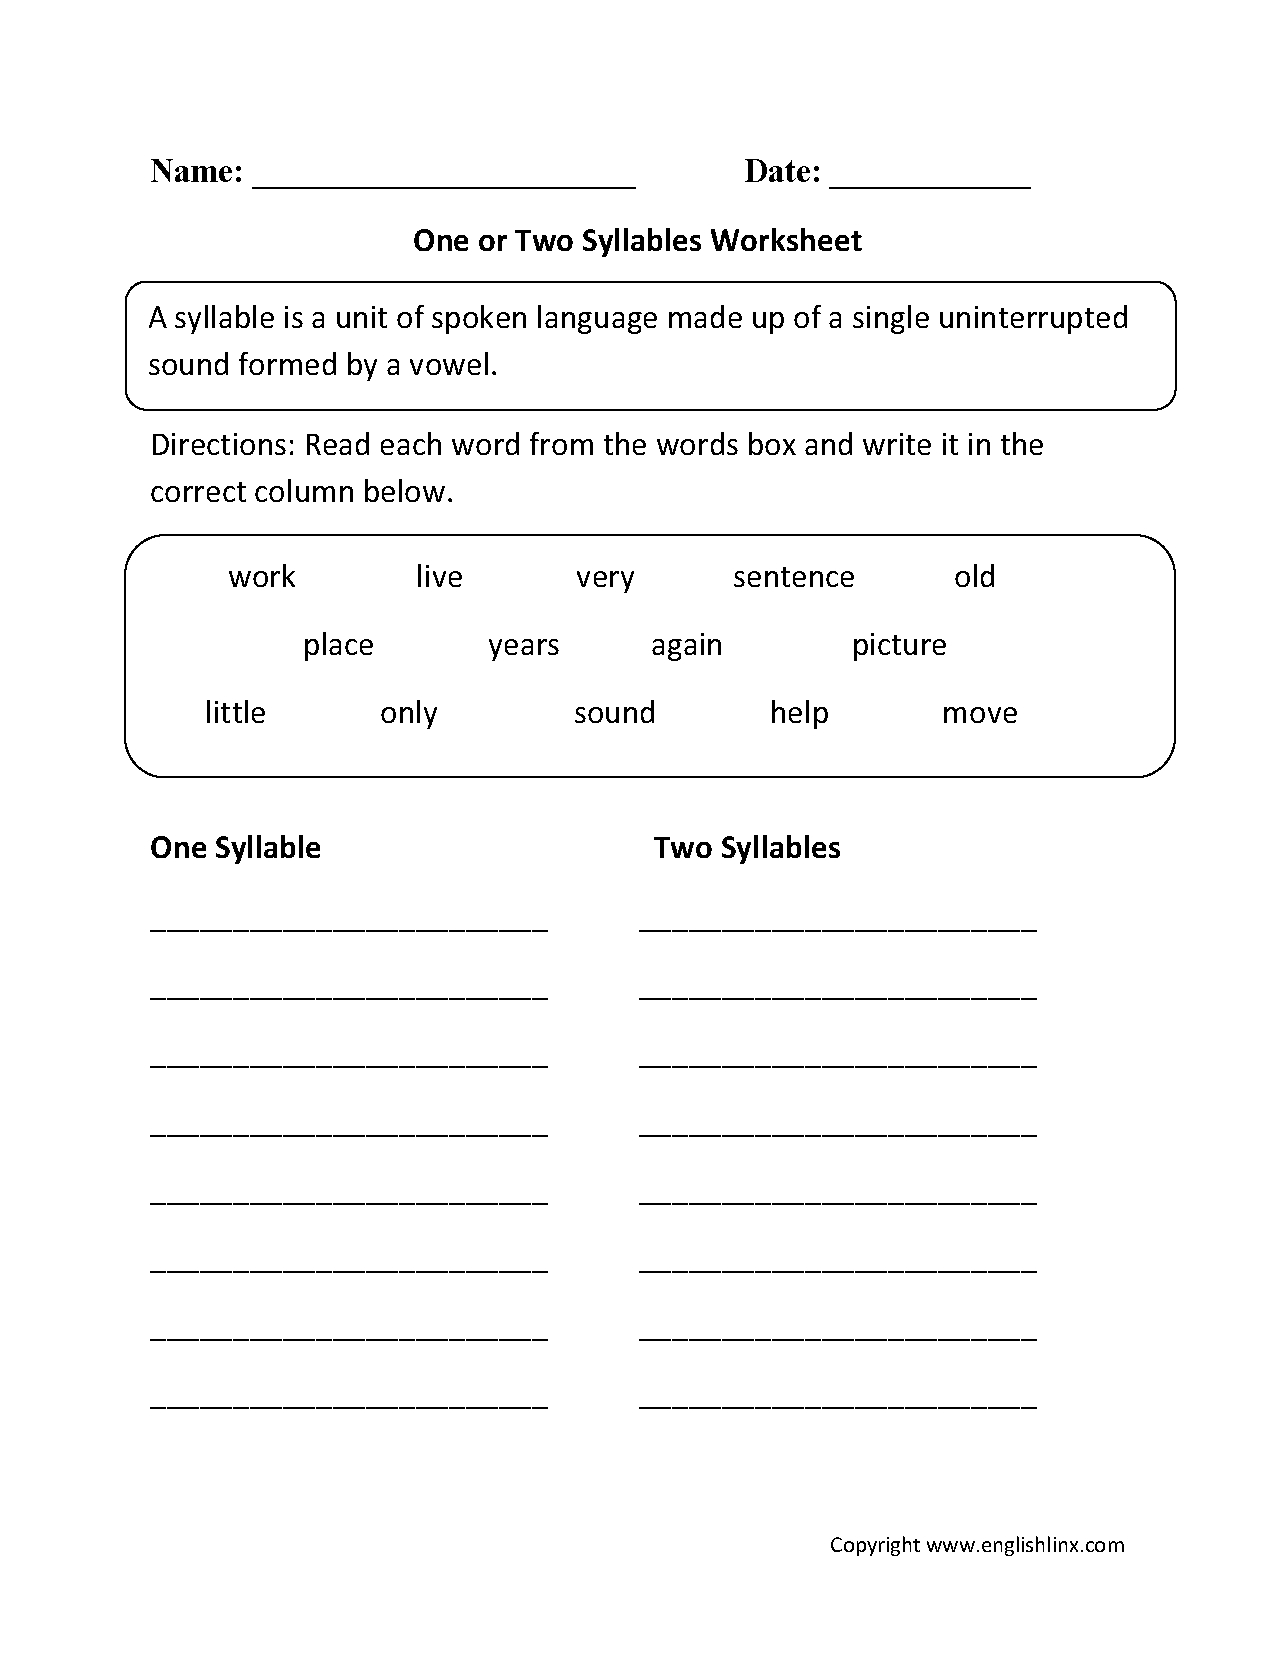 One Or Two Syllables Worksheet   1   Syllable, Speech Therapy - Free Printable Open And Closed Syllable Worksheets